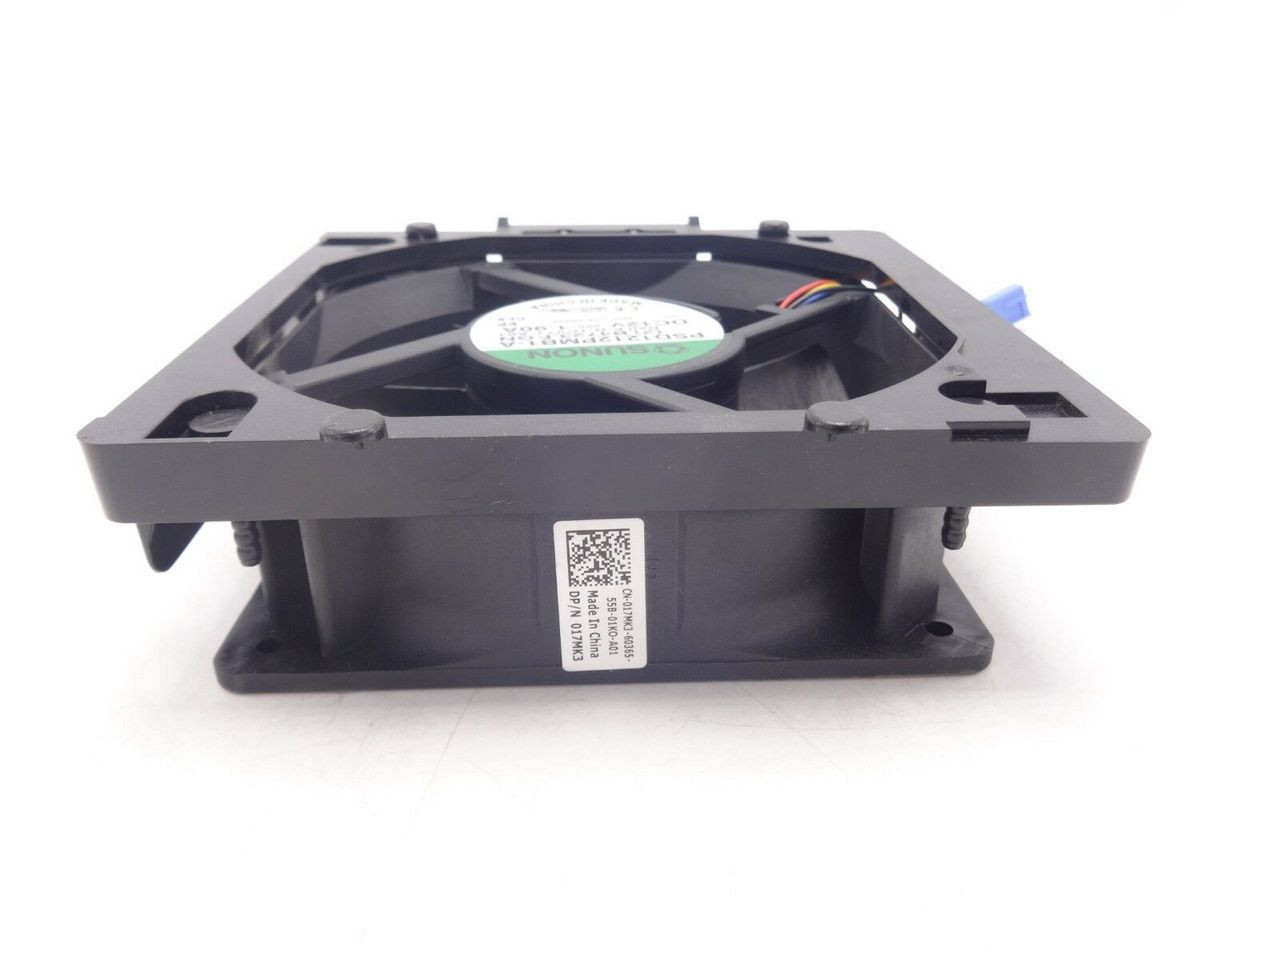 Dell 17MK3 Poweredge T440 | T430 Rear Fan